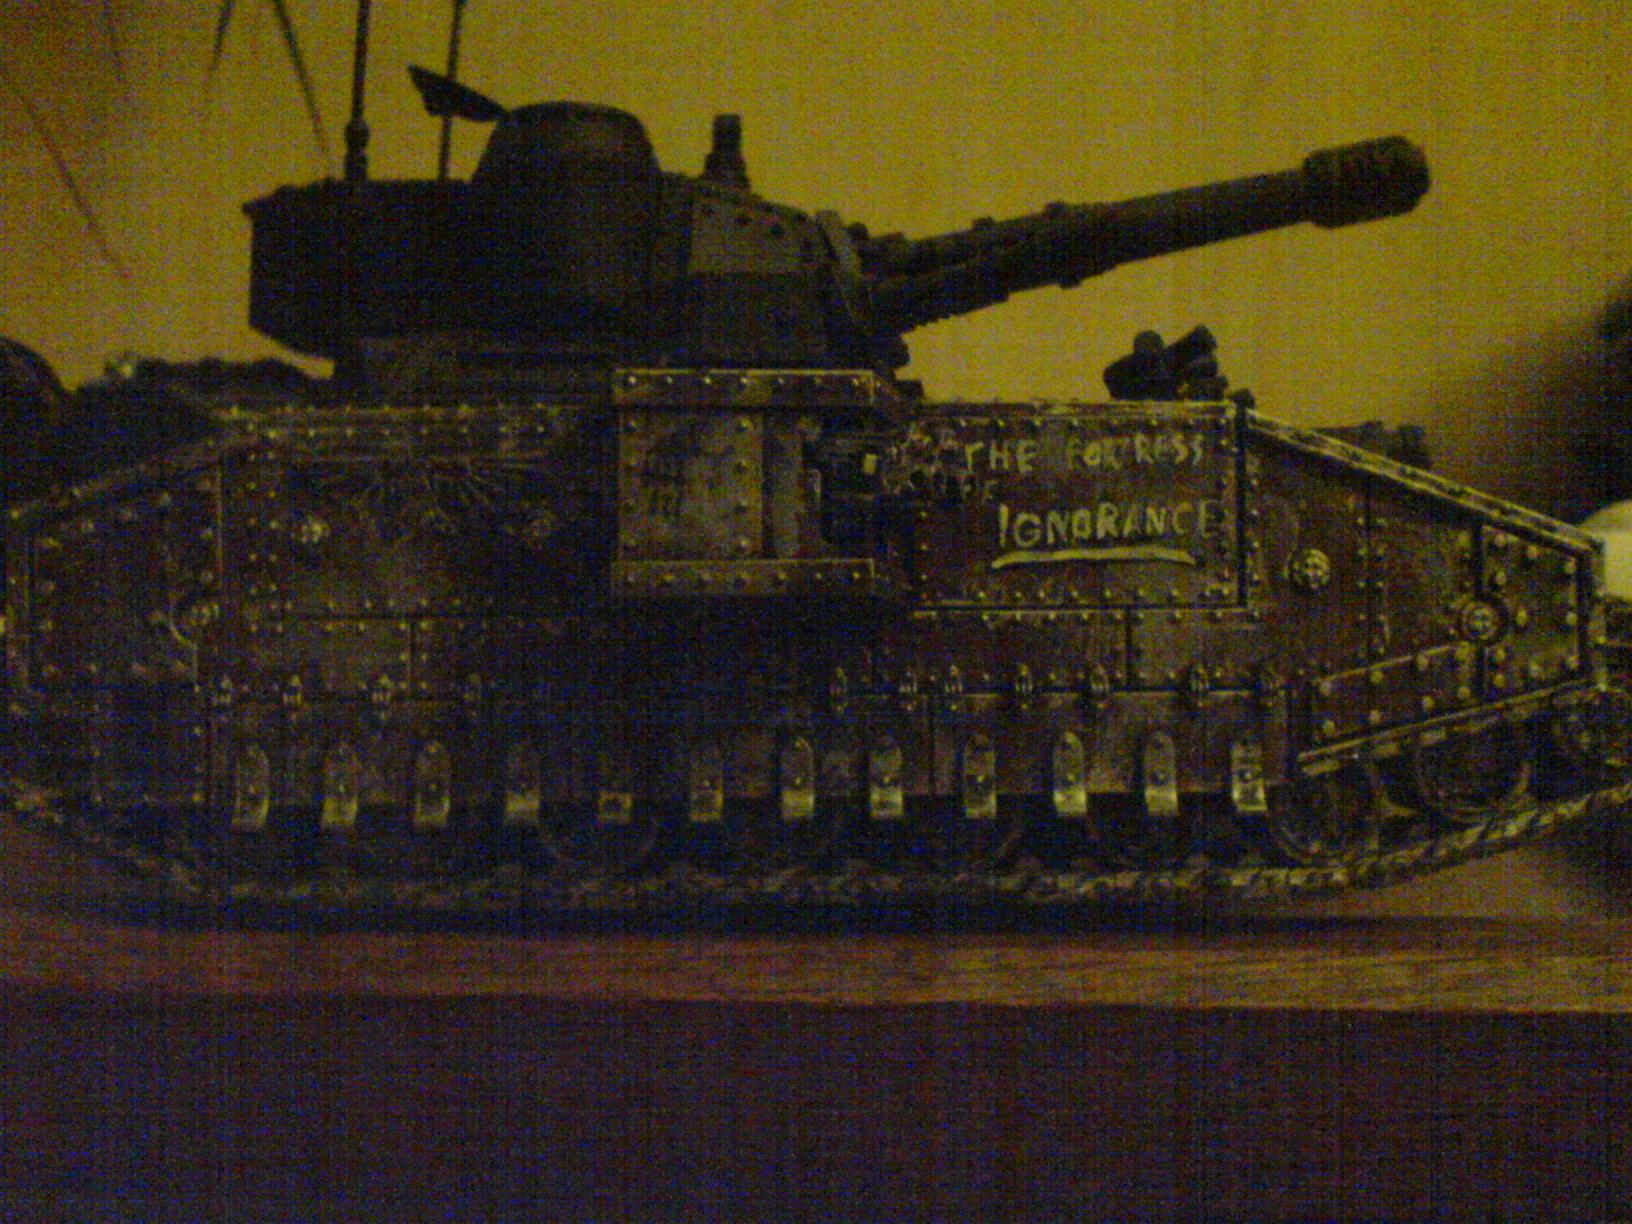 Baneblade, Imperial Guard, Poor Picture Quality, Superheavy Tank